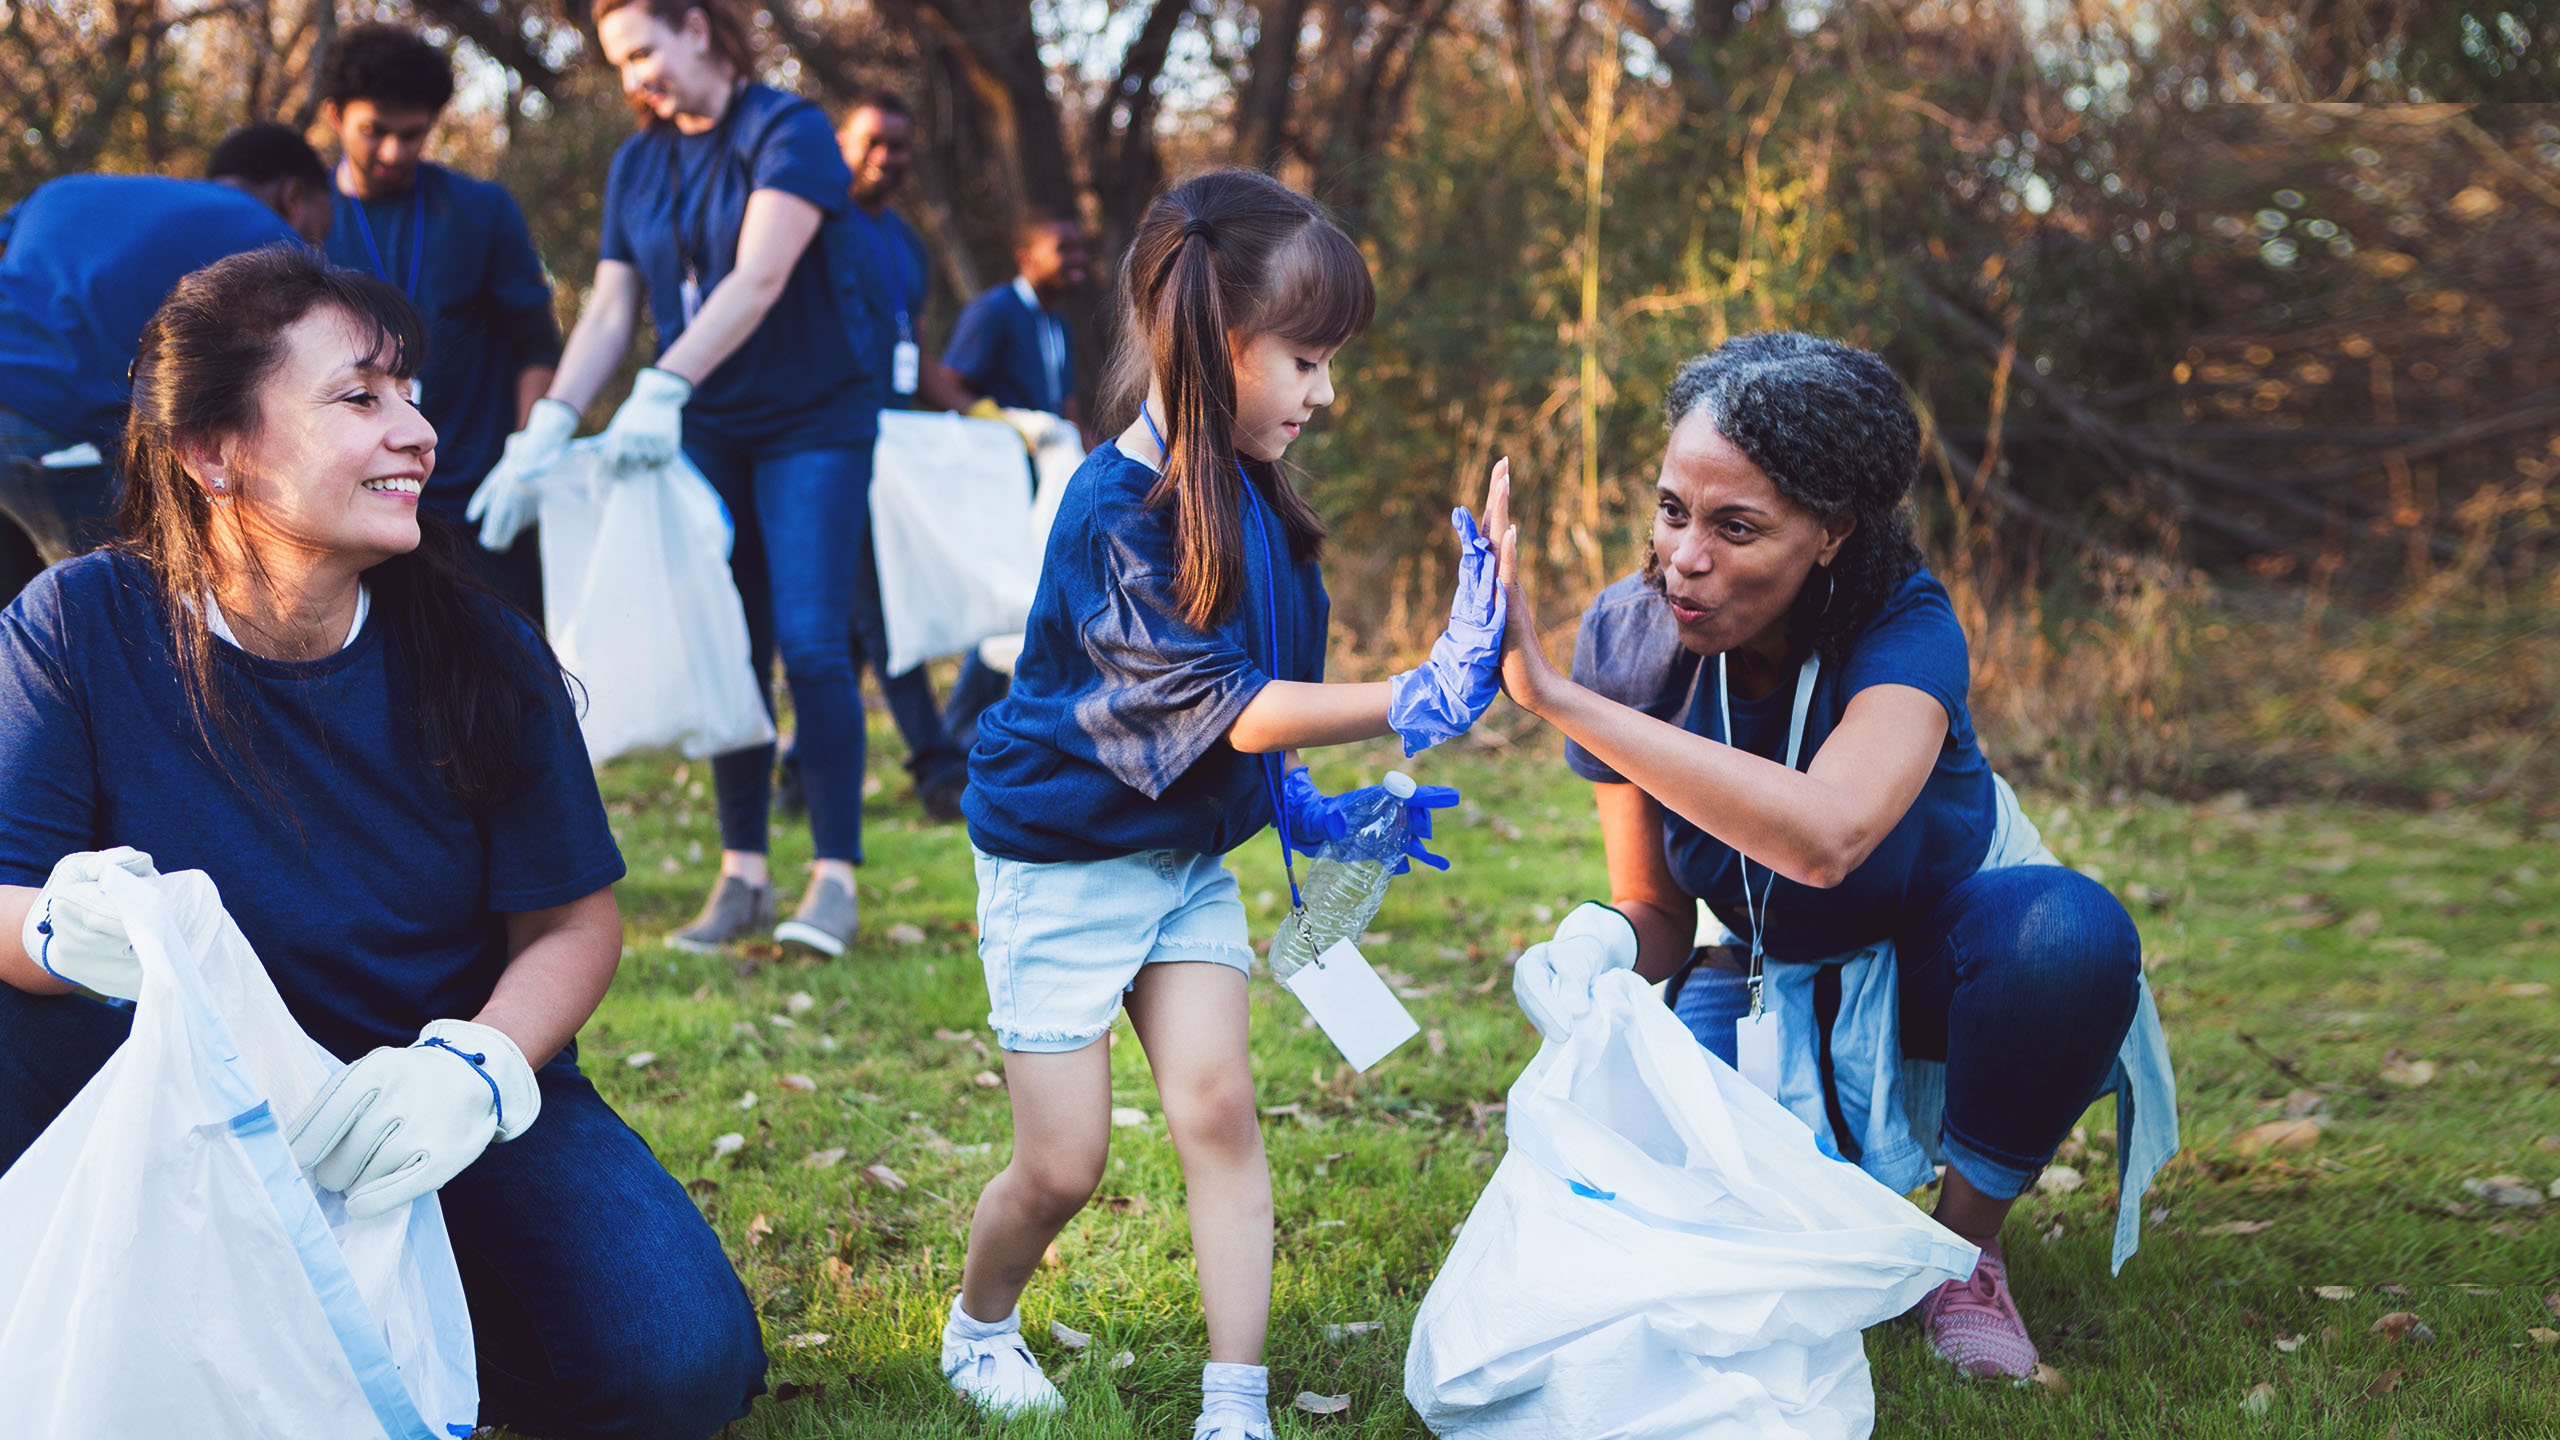 A child giving an adult a high five while volunteering